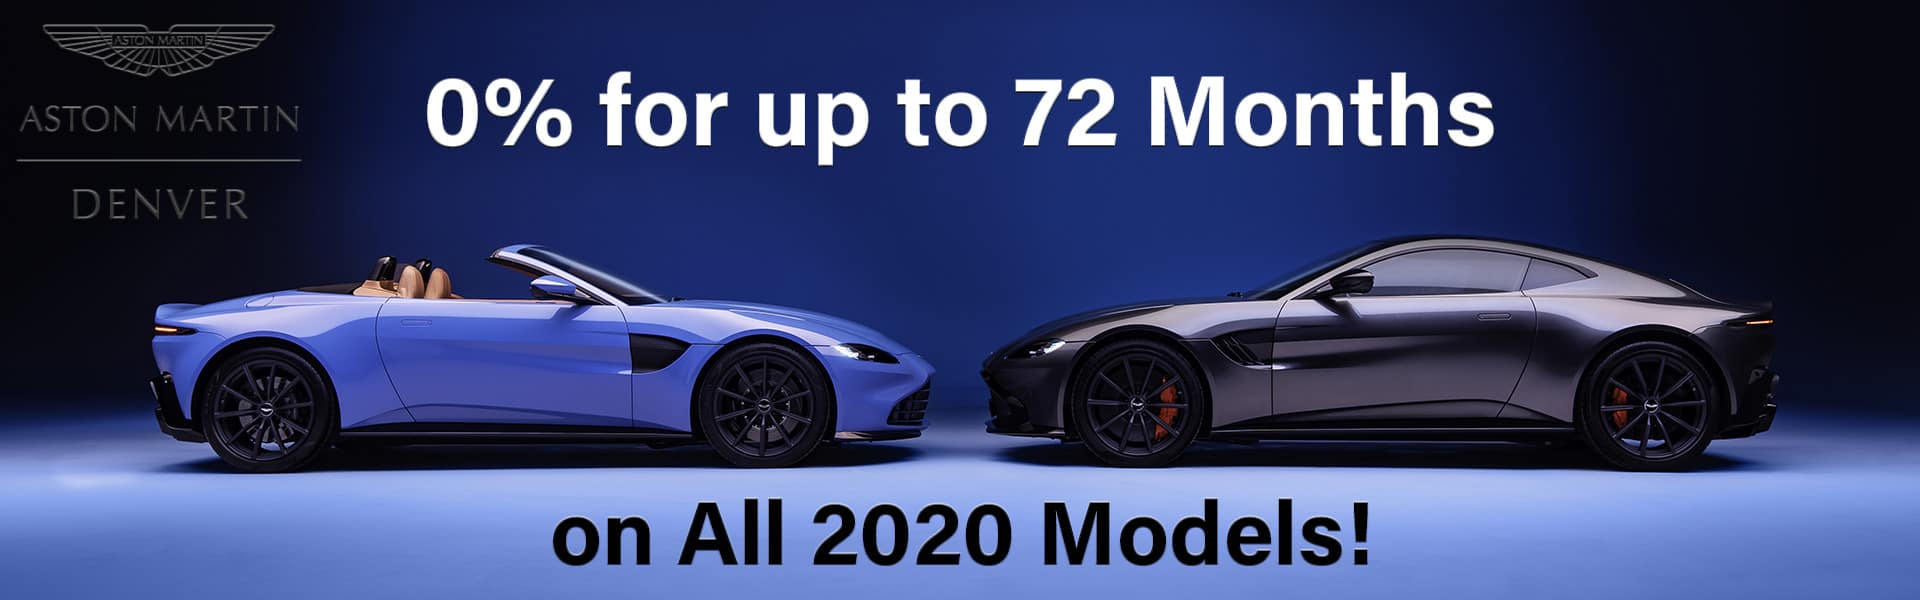 0% for up to 72 Months